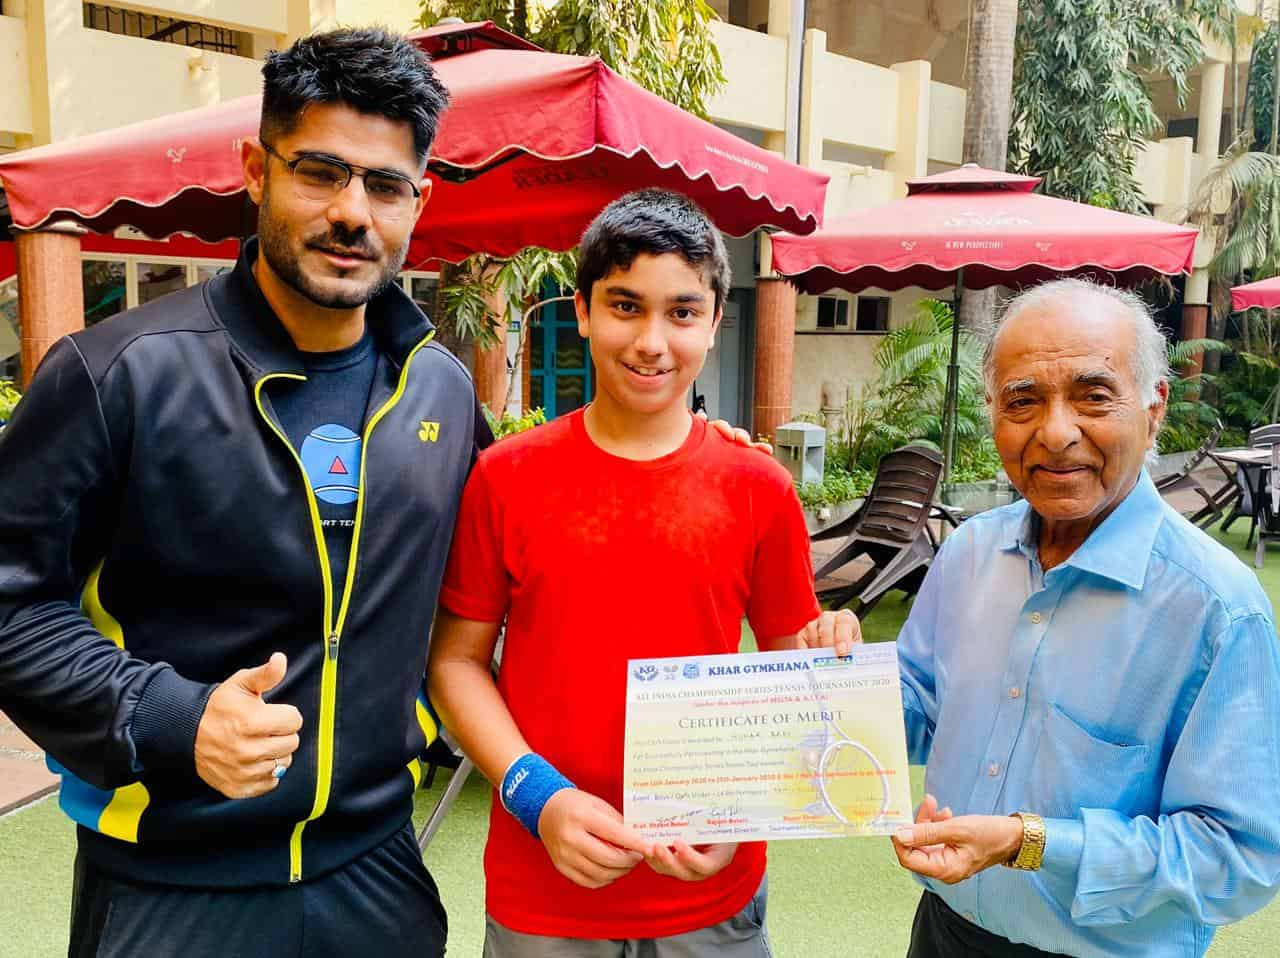 Master Hunar Bedi reaches the TOP 4 in an All India Level Tournament!